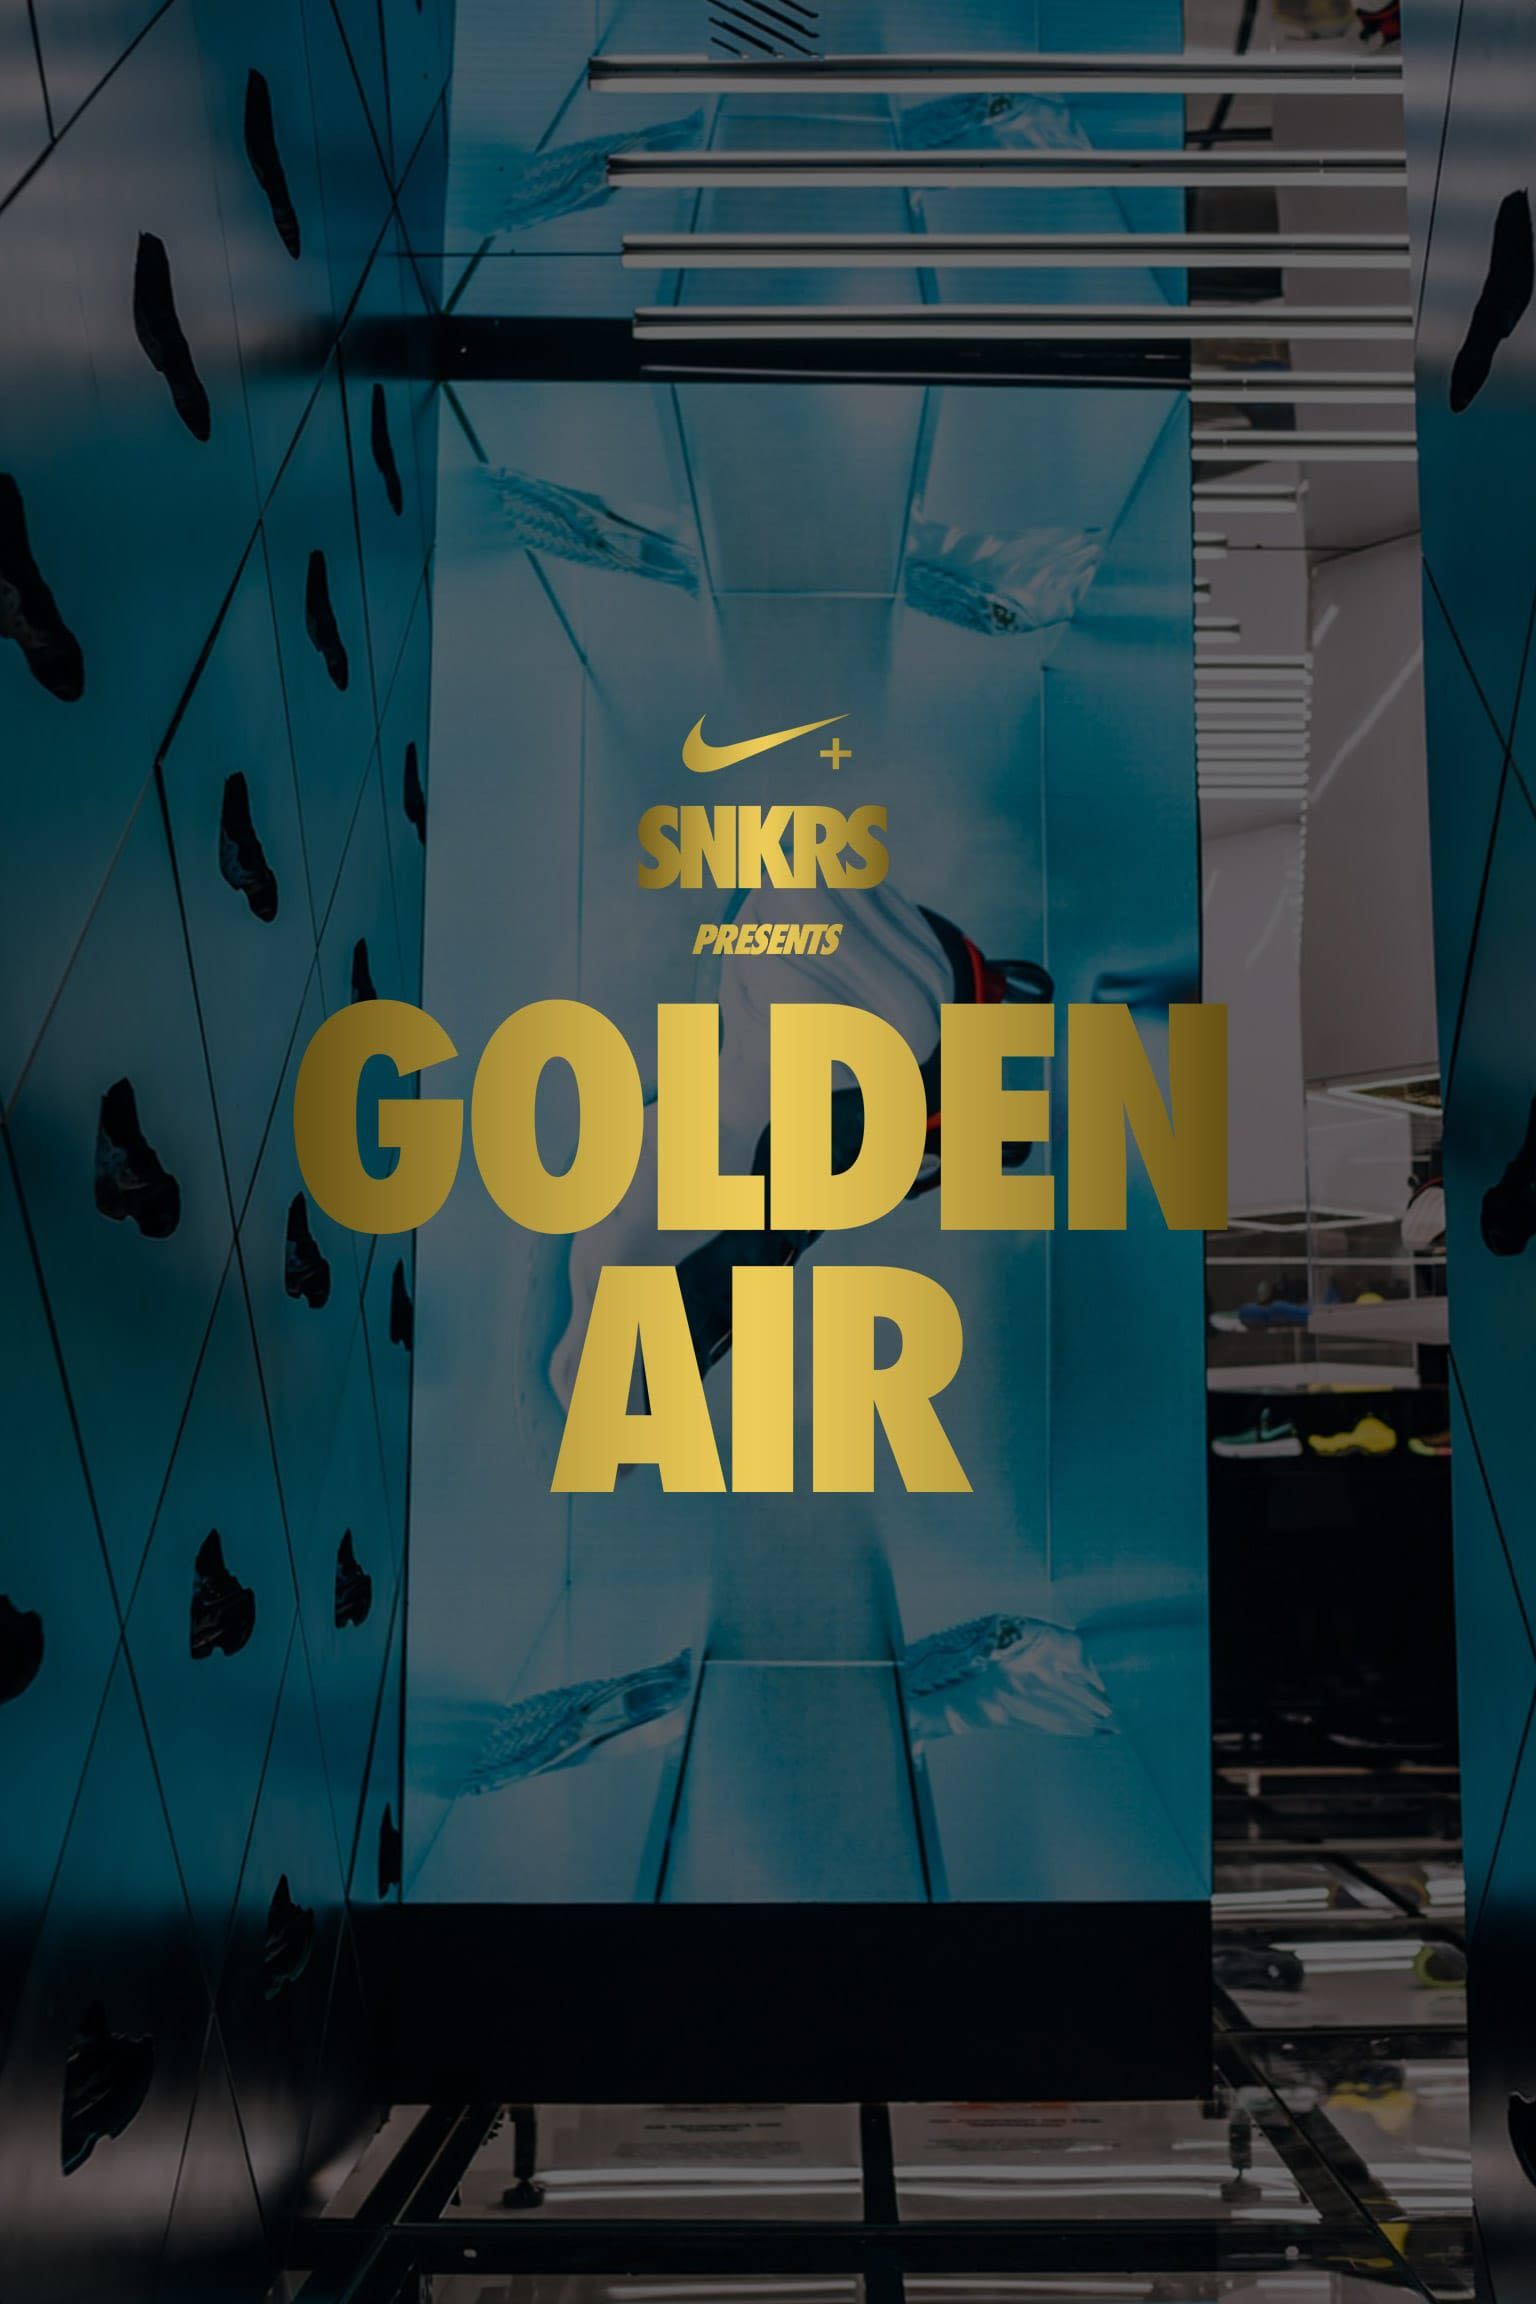 Golden Air: Inside the Experience